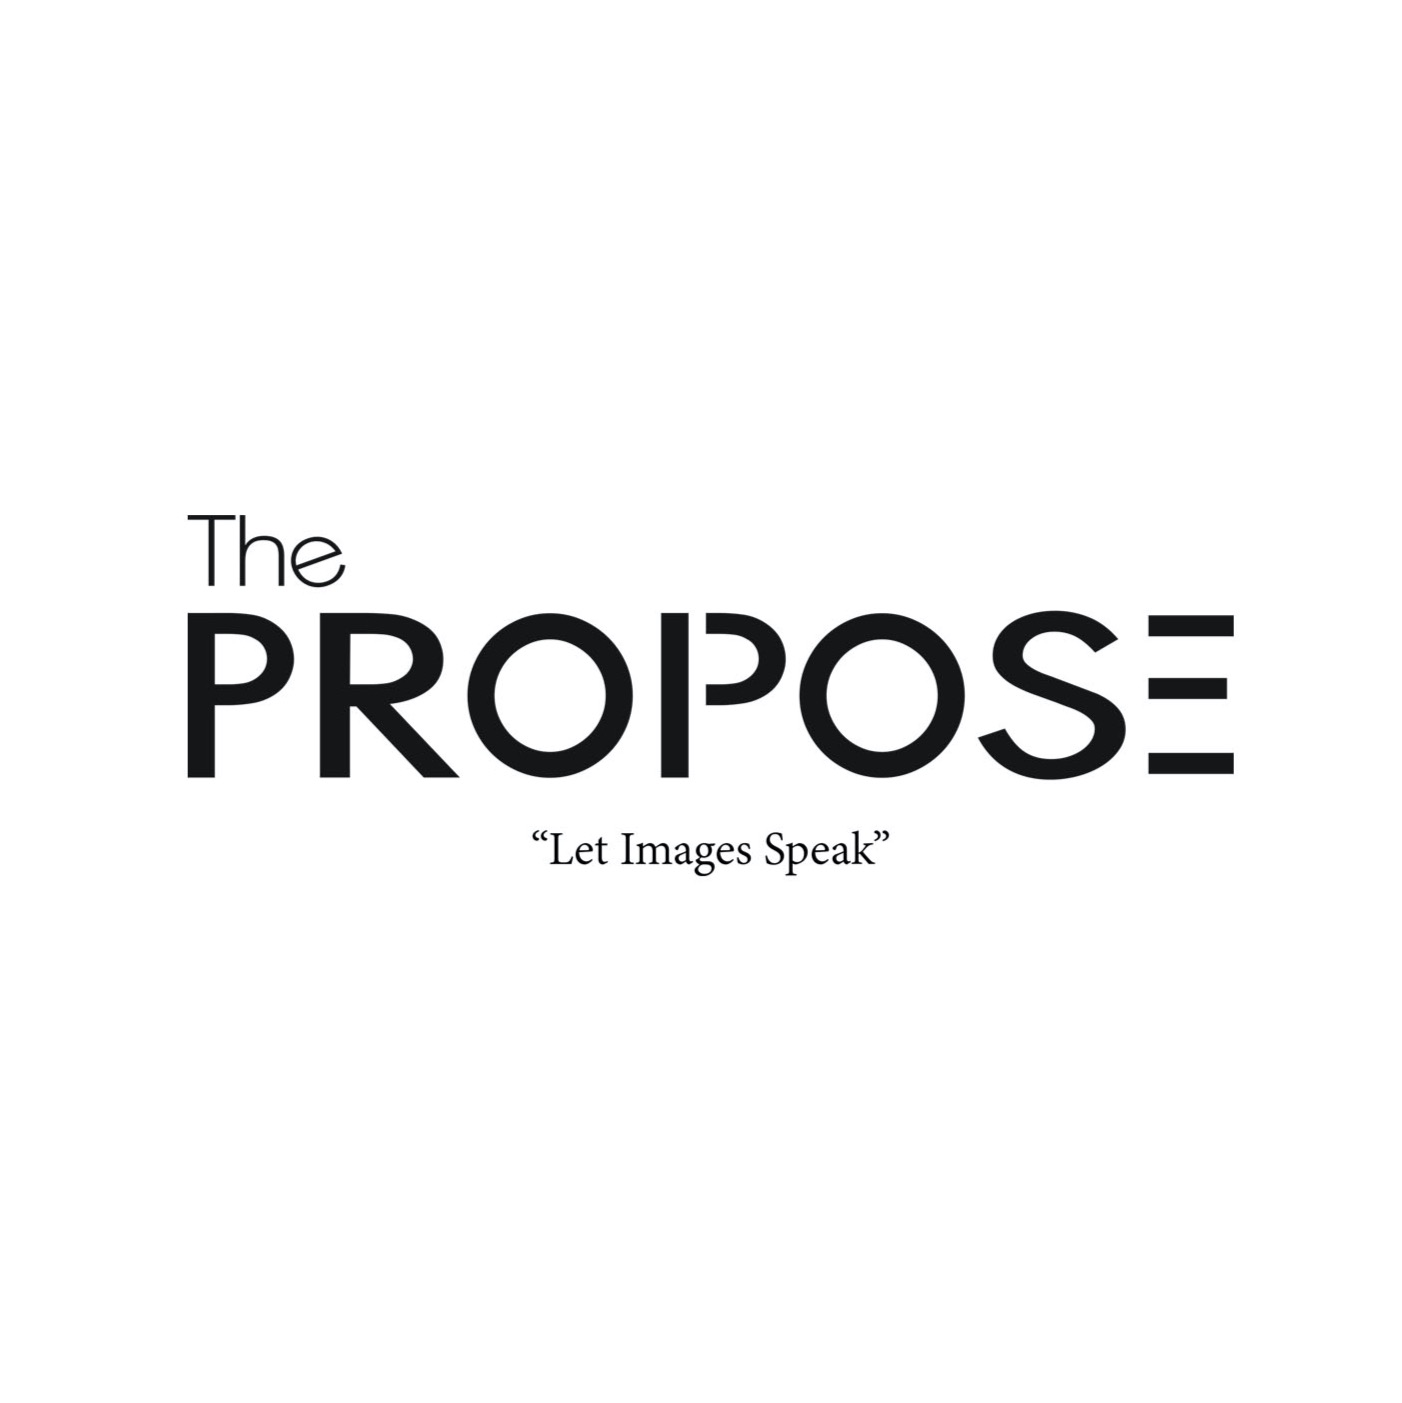 The Propose